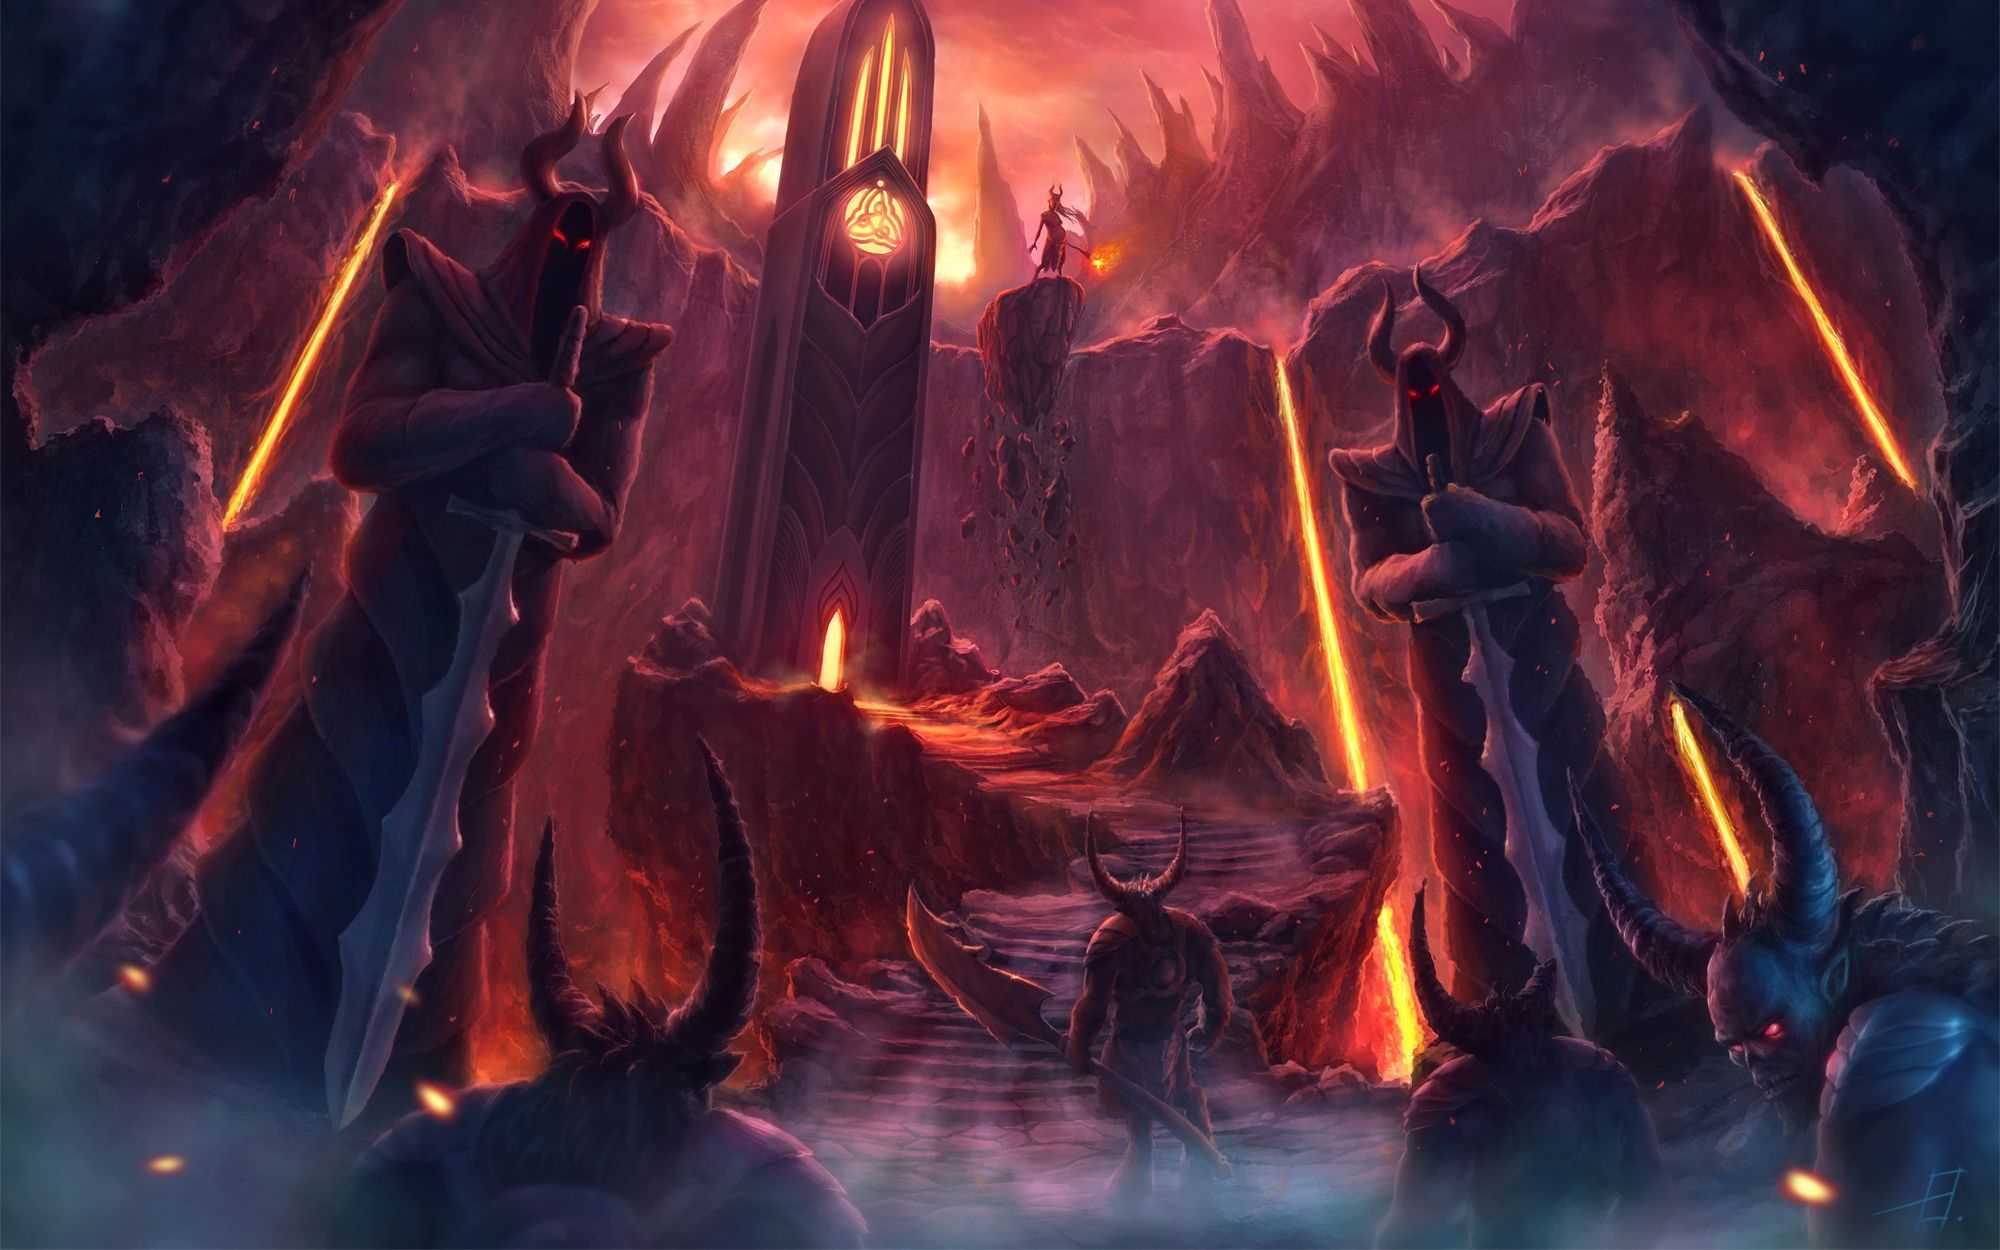 hell art wallpapers - wallpaper cave